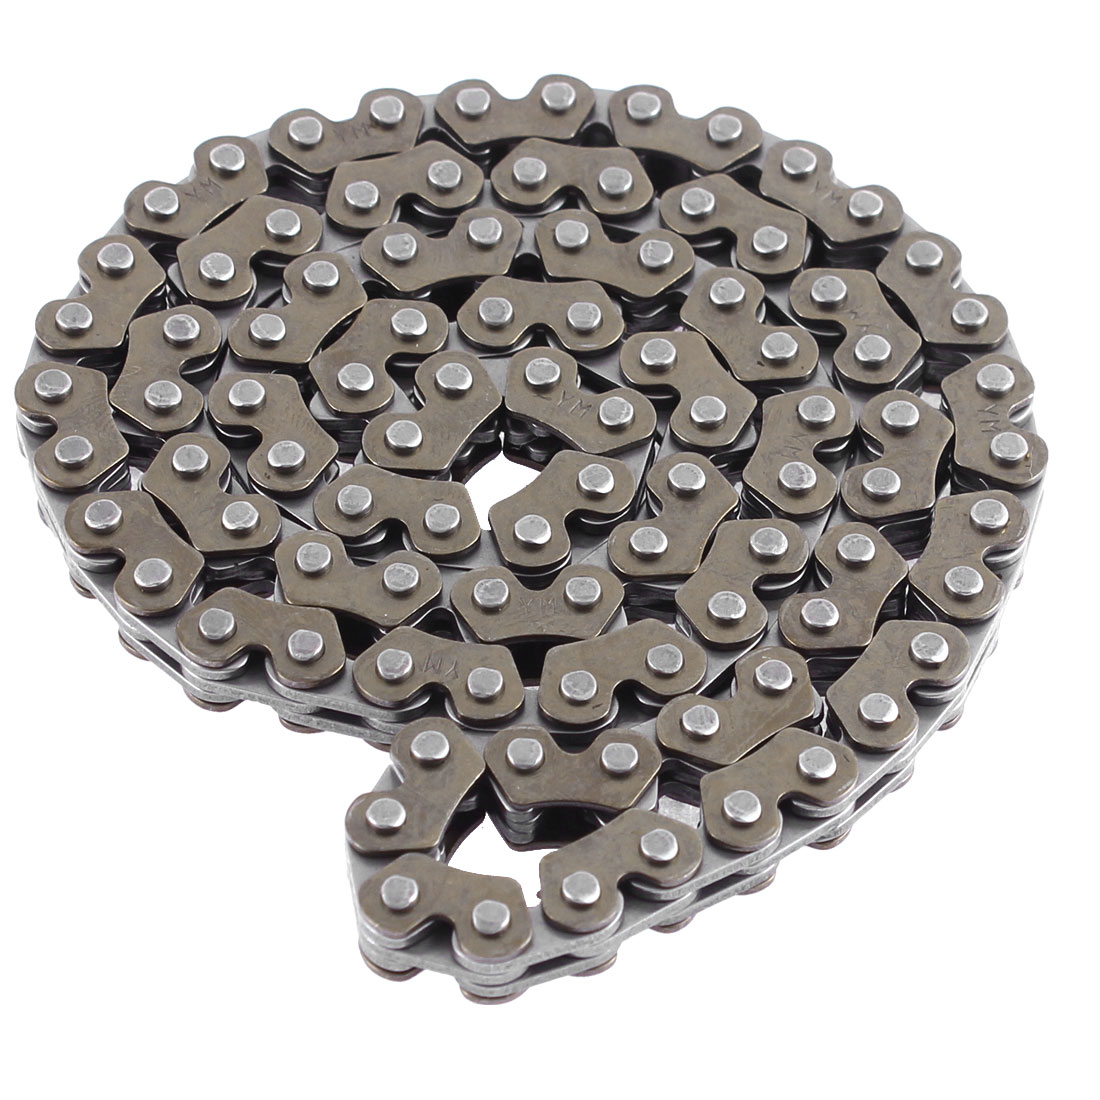 "Unique Bargains Motorcycle Repair Parts Dark Gray Metal 94 Links Drive Timing Chain 24"" Girth"